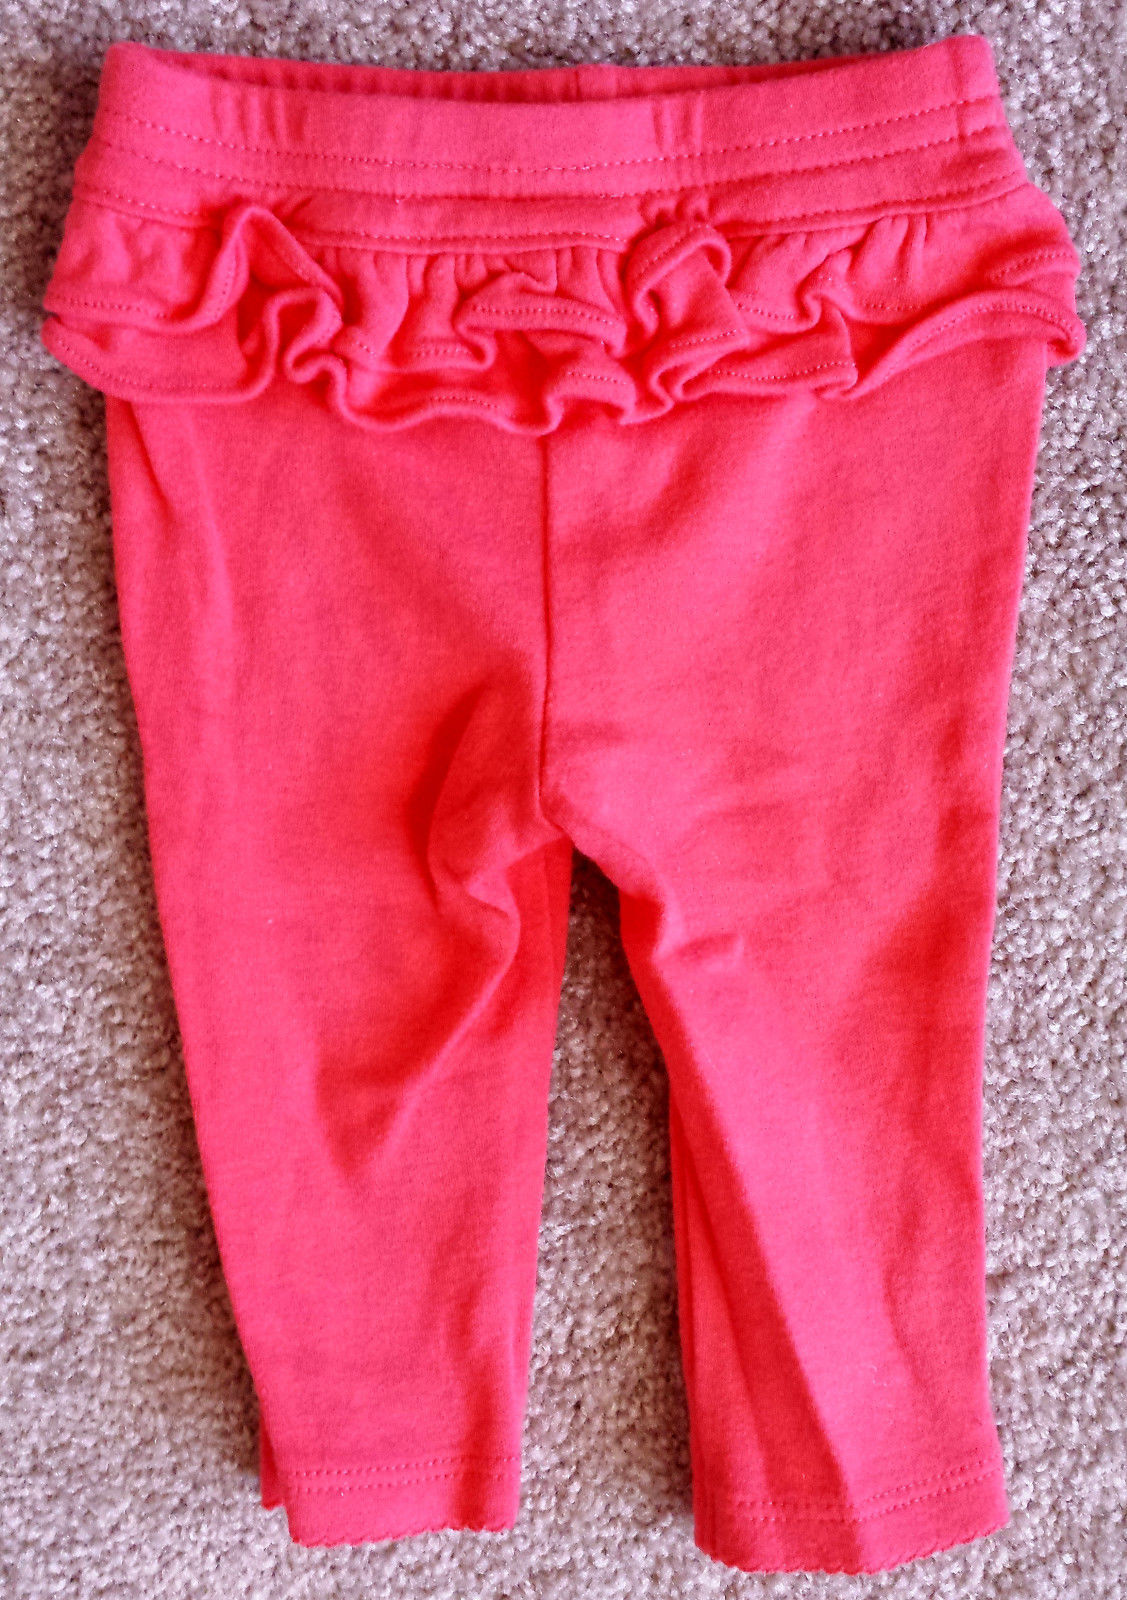 Girl's Size 0-3 M Months 3 Piece Carter's Pink/ White Striped Top, Pants + Socks